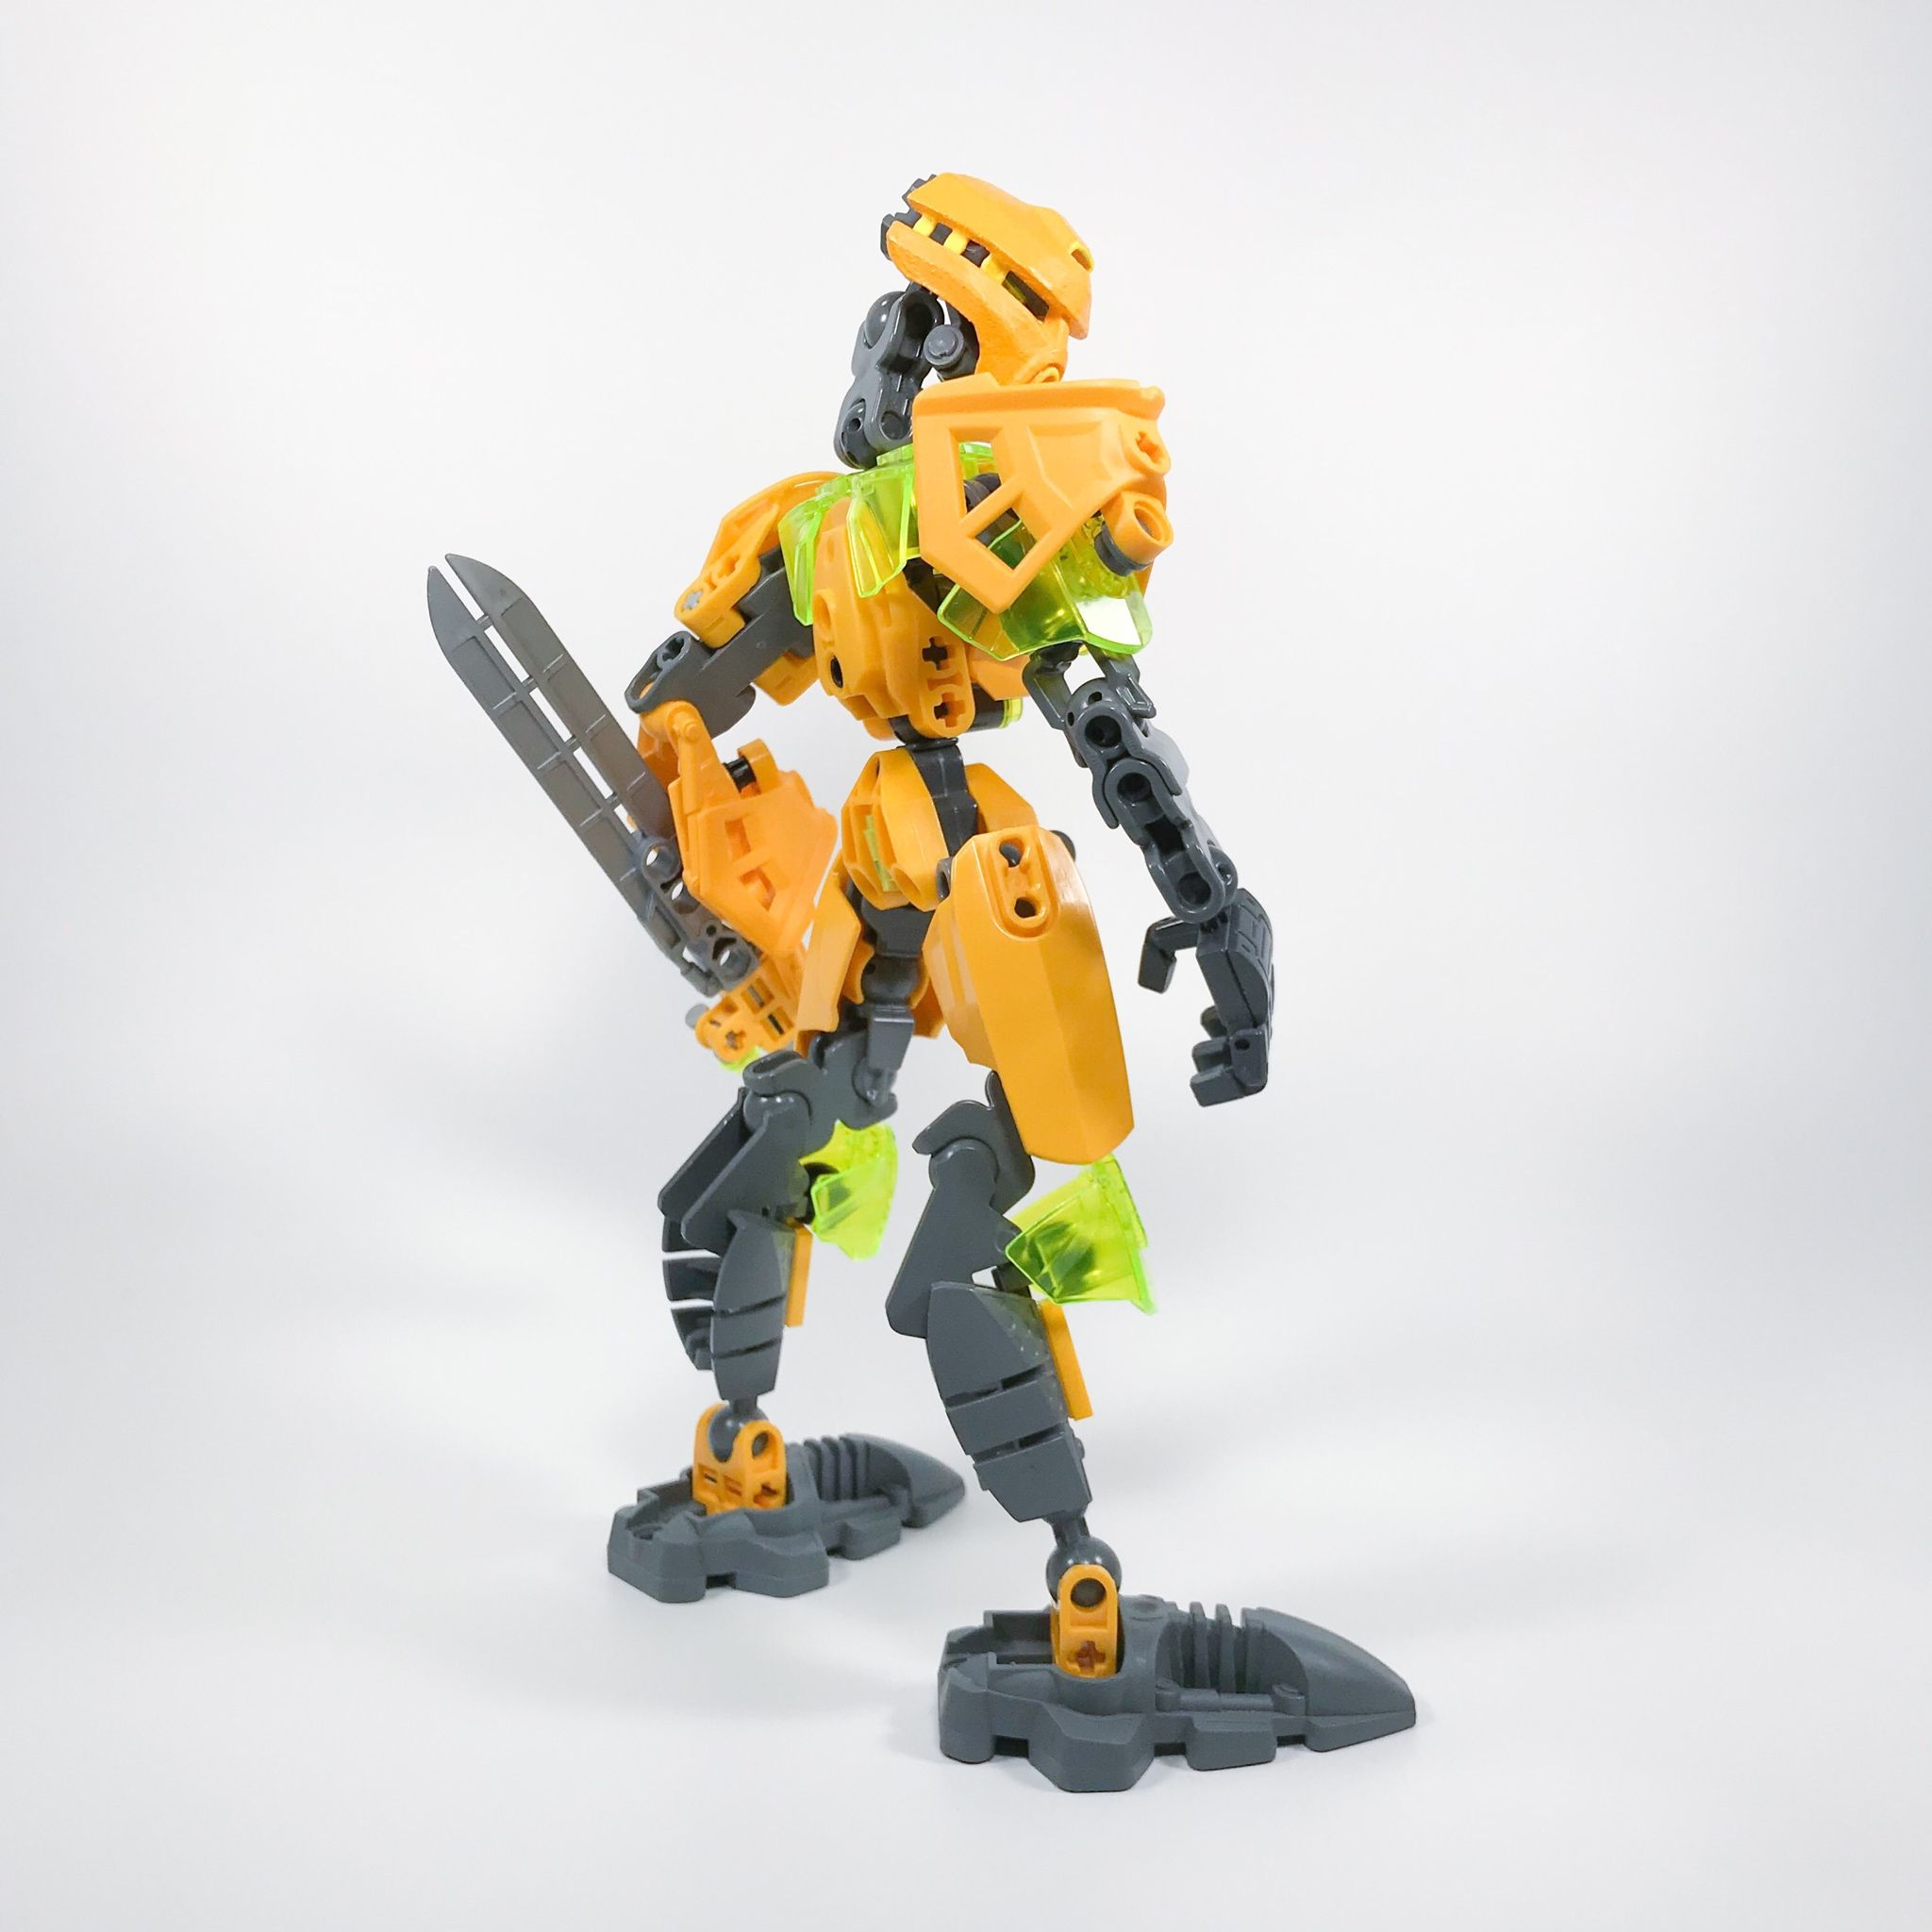 strizender sentry bot art of bionicle lego 3d printed mask